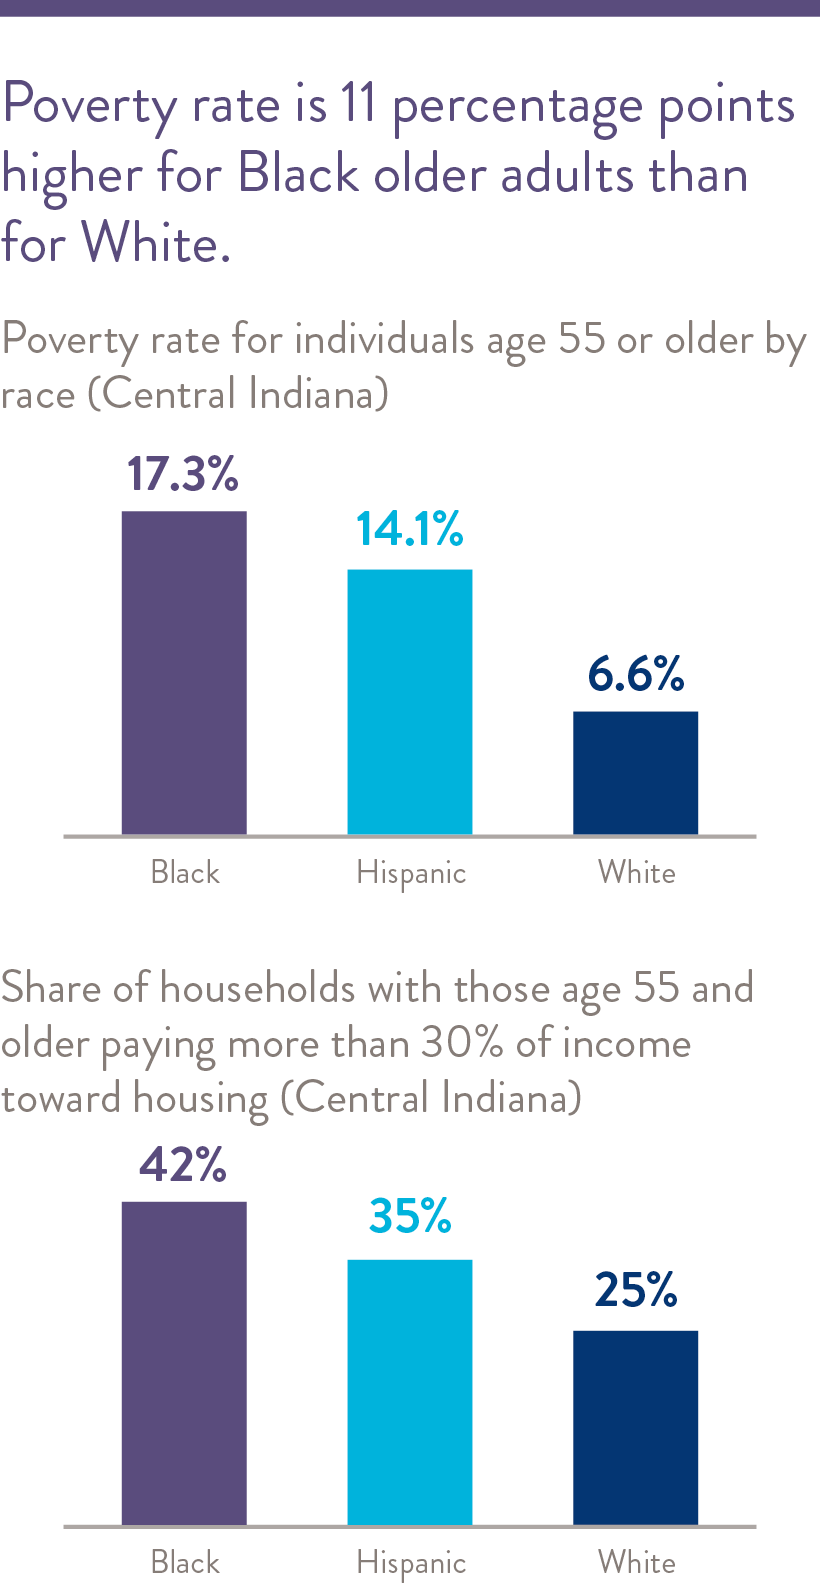 Poverty rates are 8% higher for black older adults than for white.